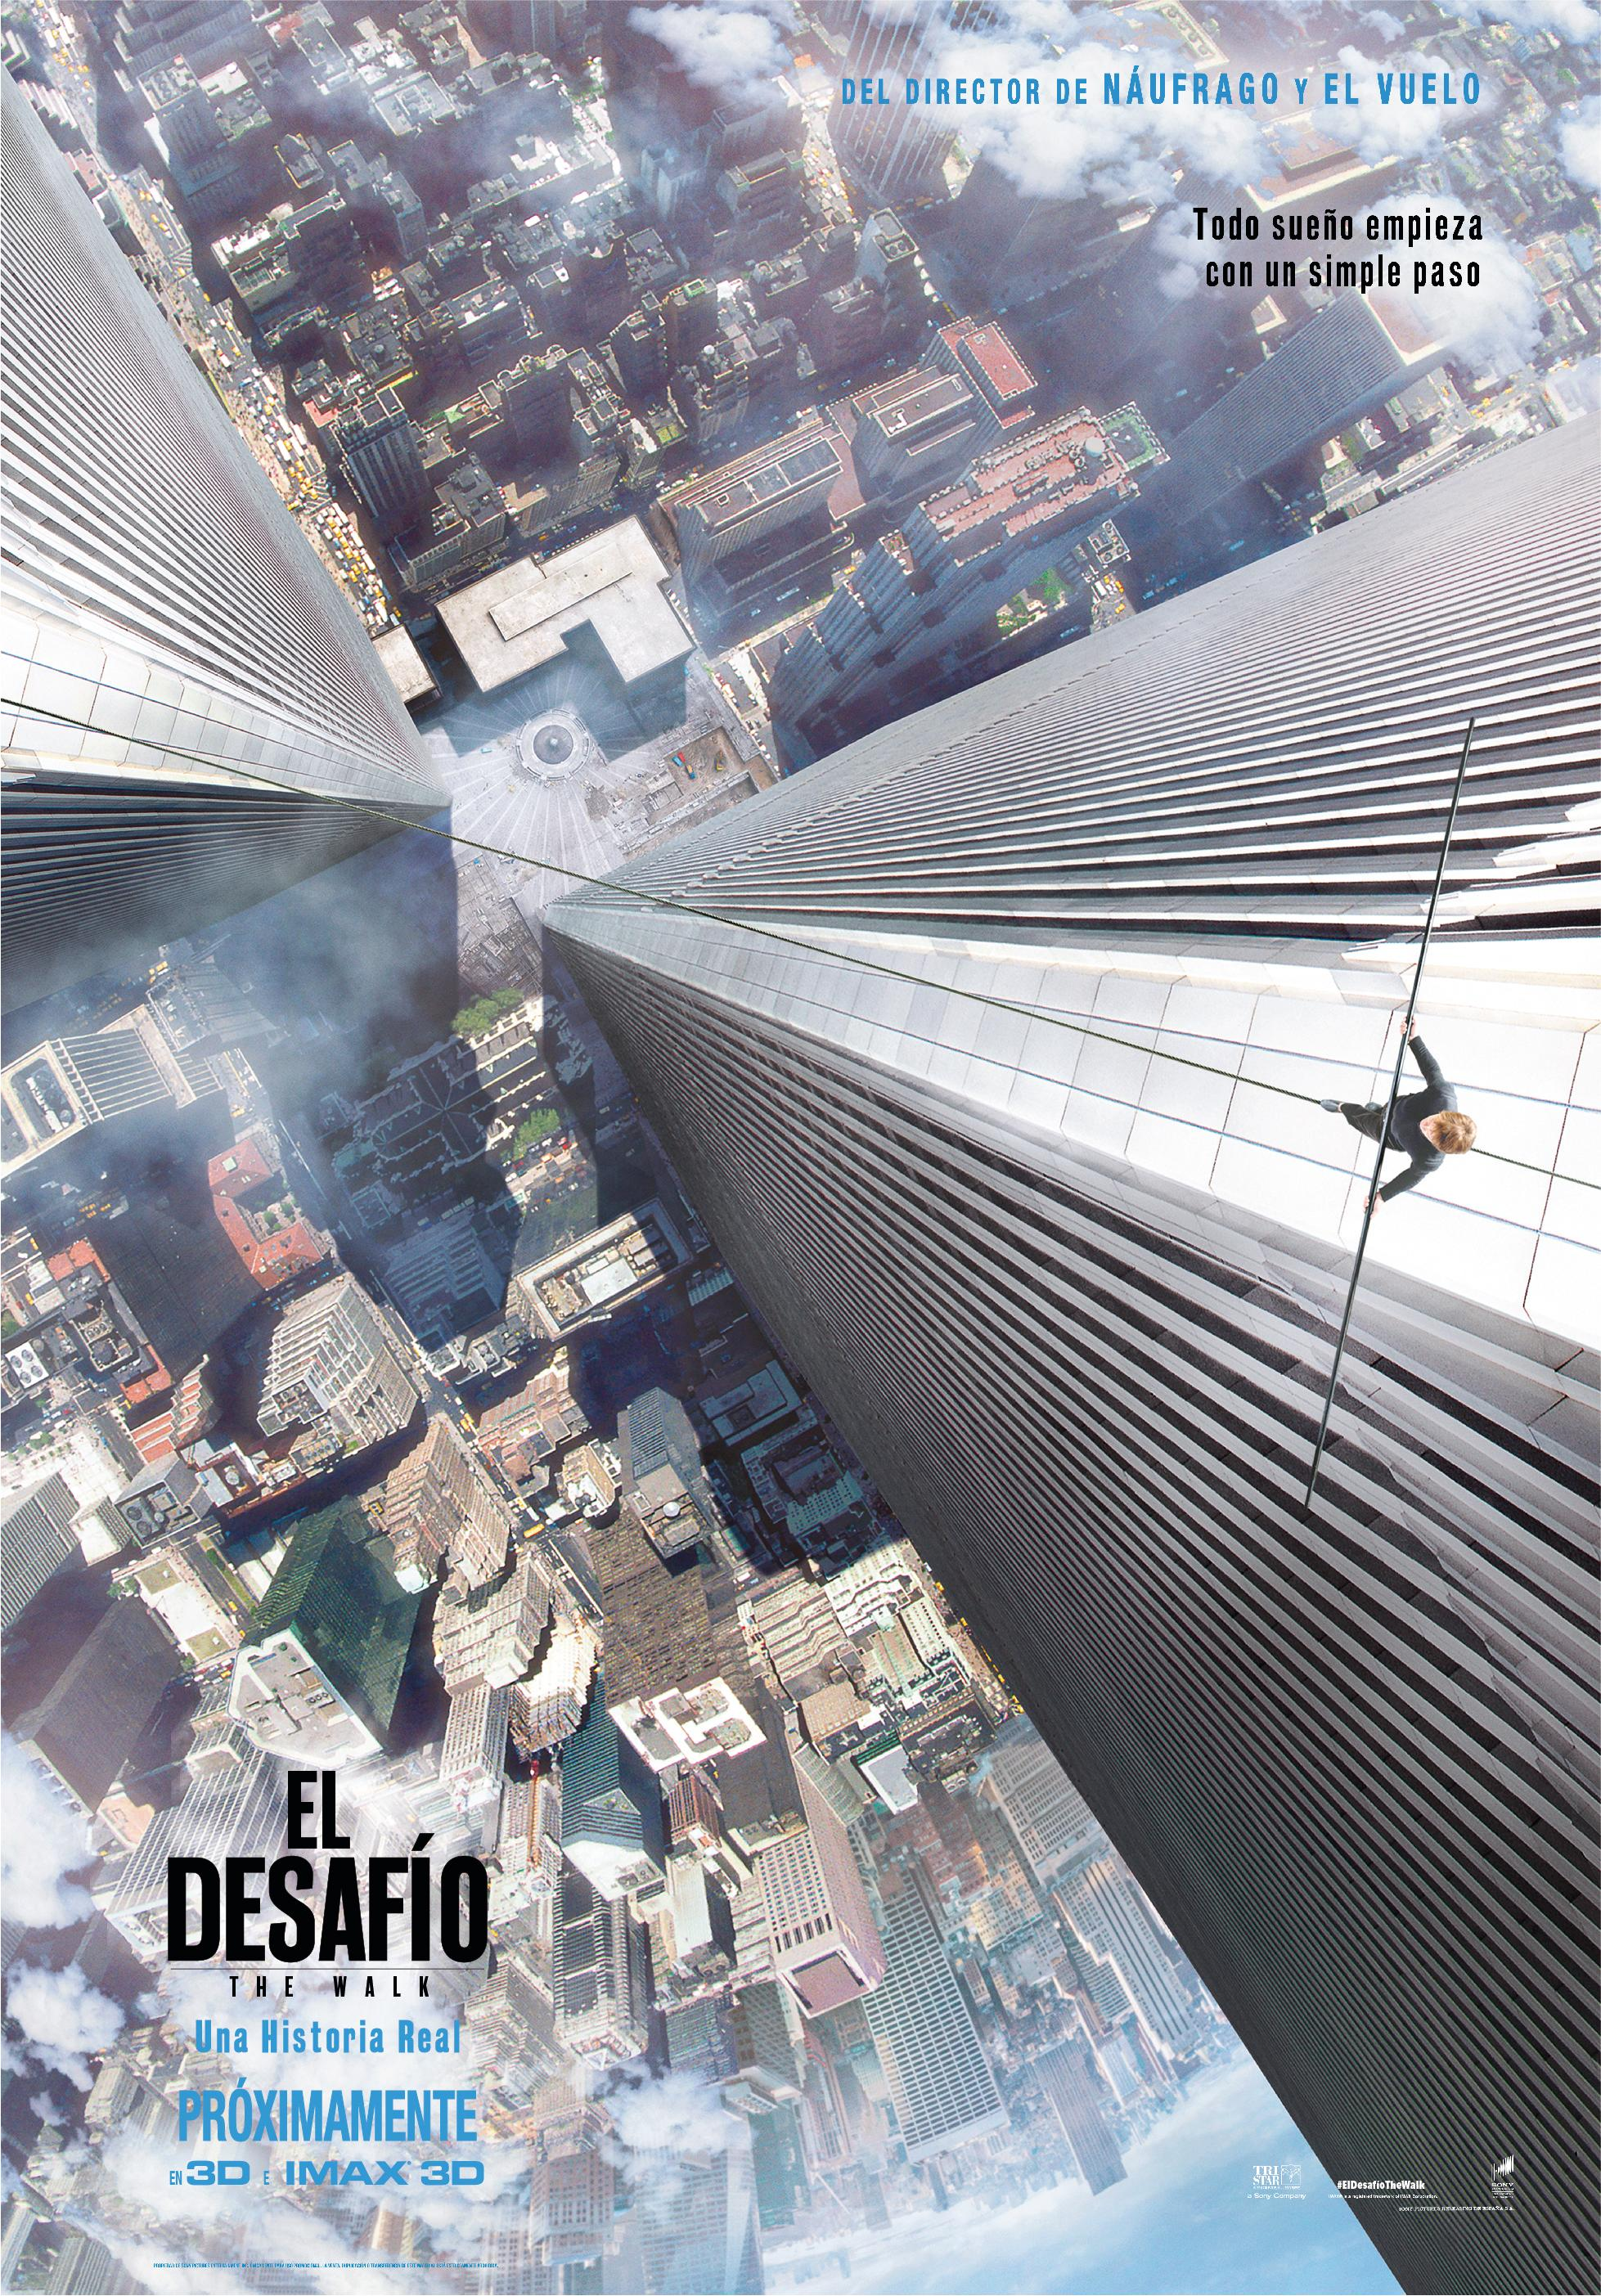 El Desafio The Walk Cartel